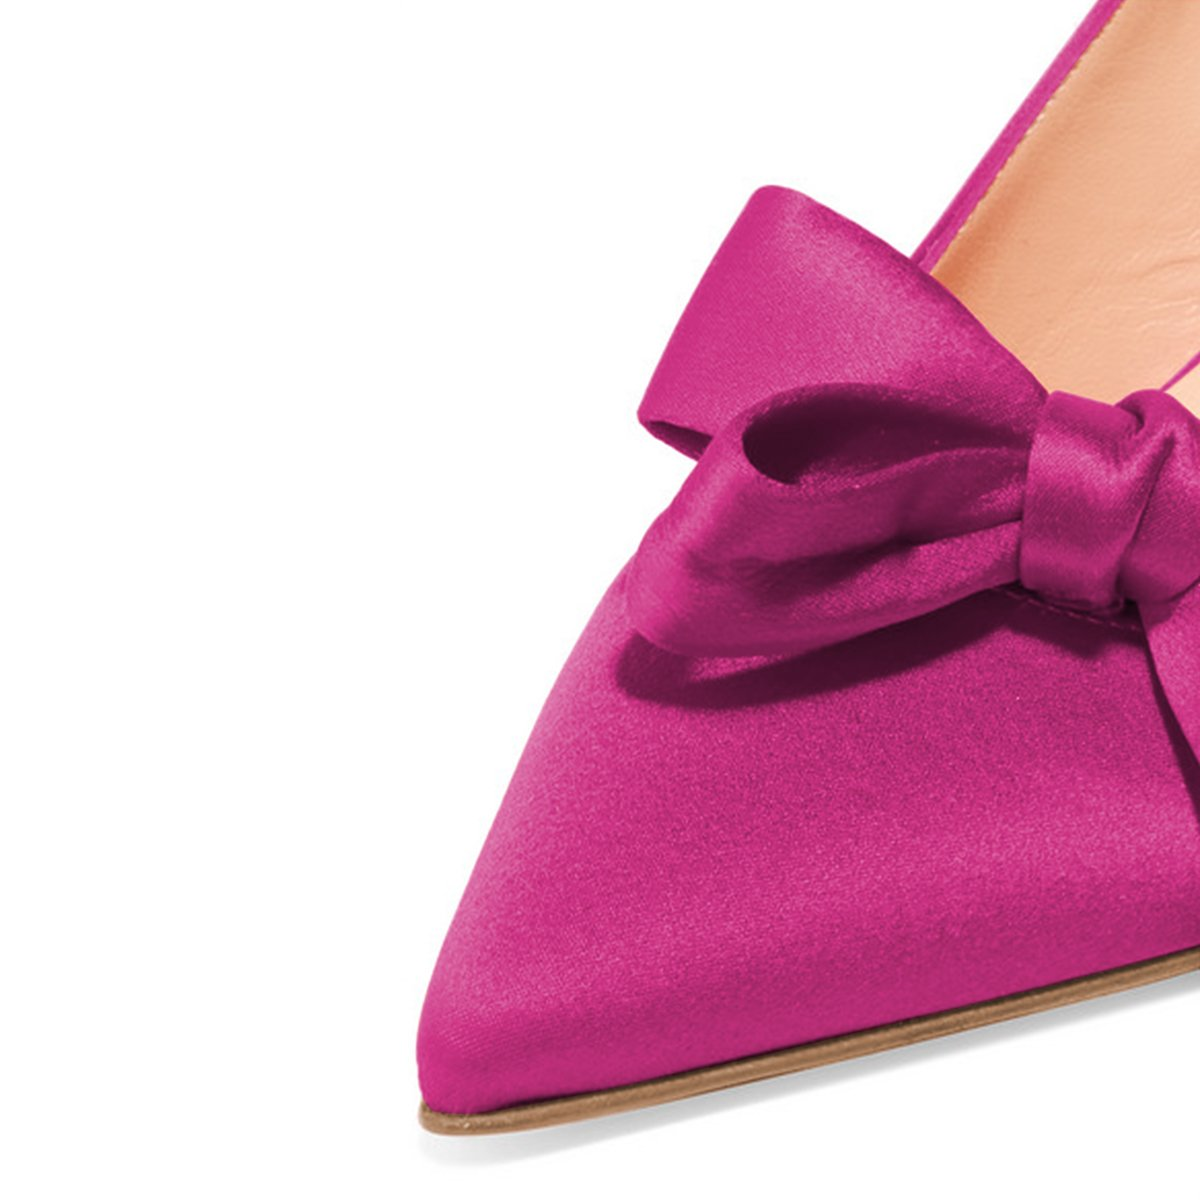 XYD Women Fashion Pointed Toe Slingback Pumps High Heel Slip On Dress Shoes with Bows B0799H9CCN 5 B(M) US|Fuchsia